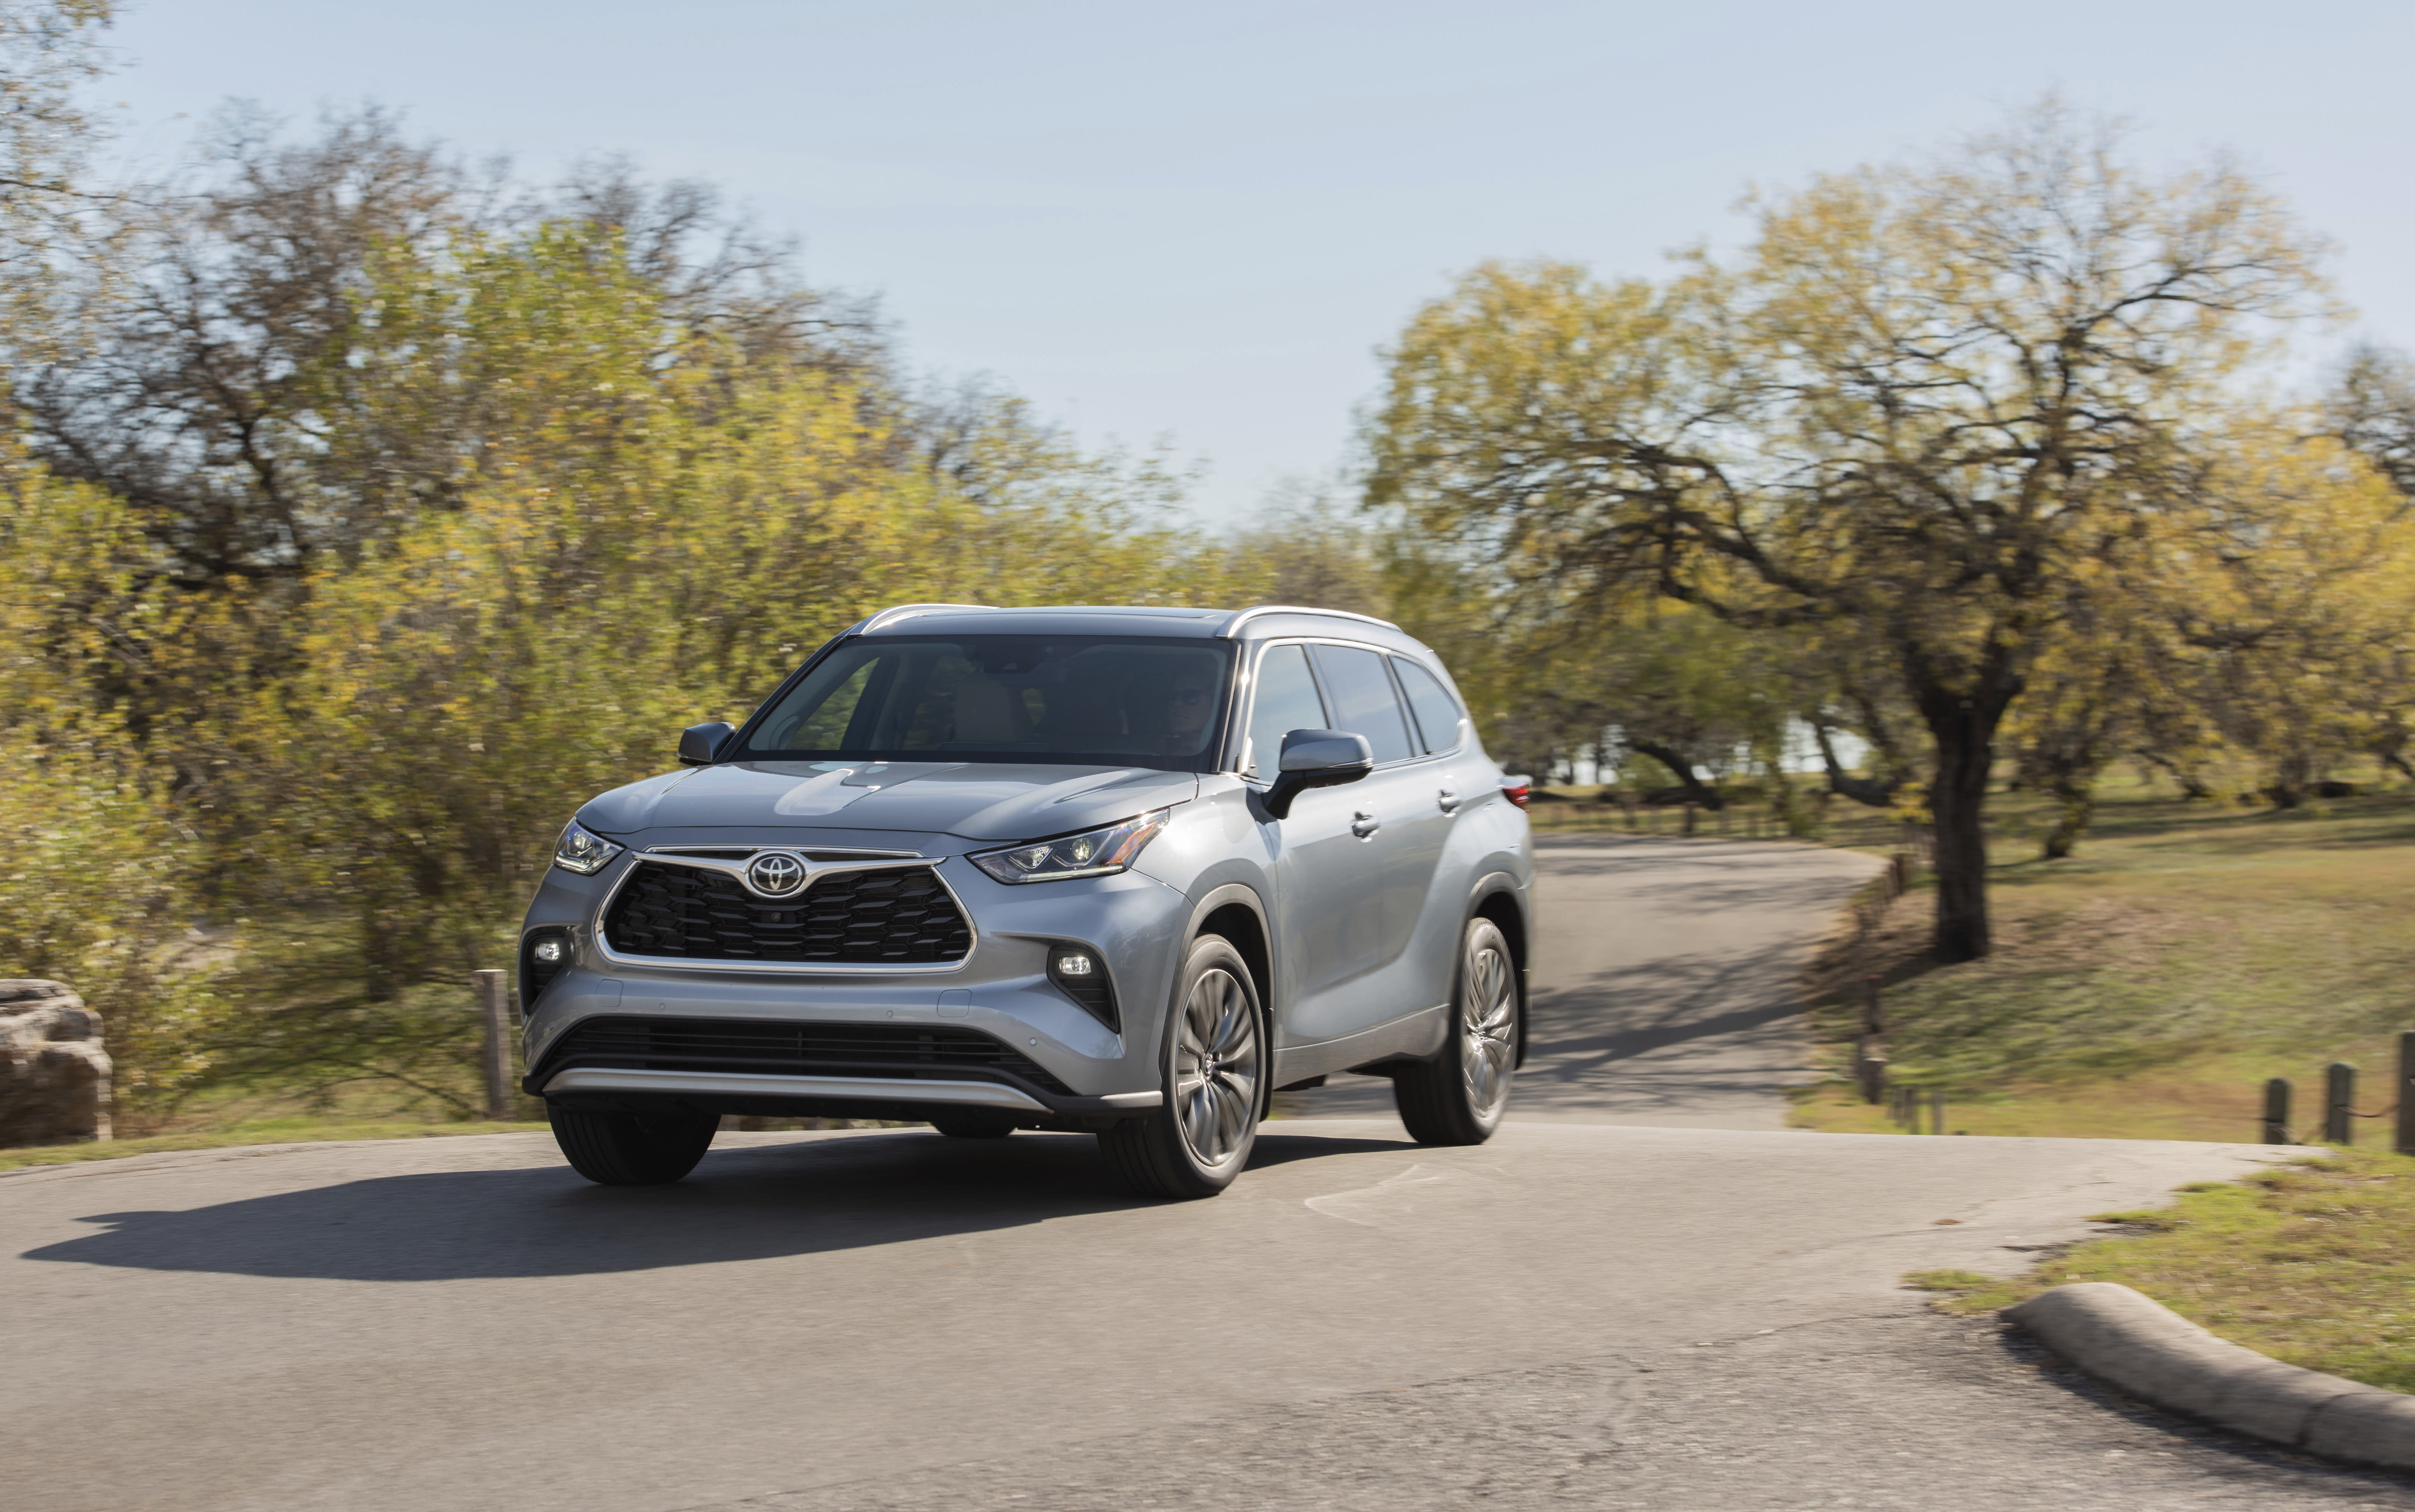 This photo provided by Toyota shows the 2020 Toyota Highlander, a midsize three-row SUV that offers more room and refinements in its redesign for 2020. (Courtesy of Toyota Motor Sales U.S.A. via AP)